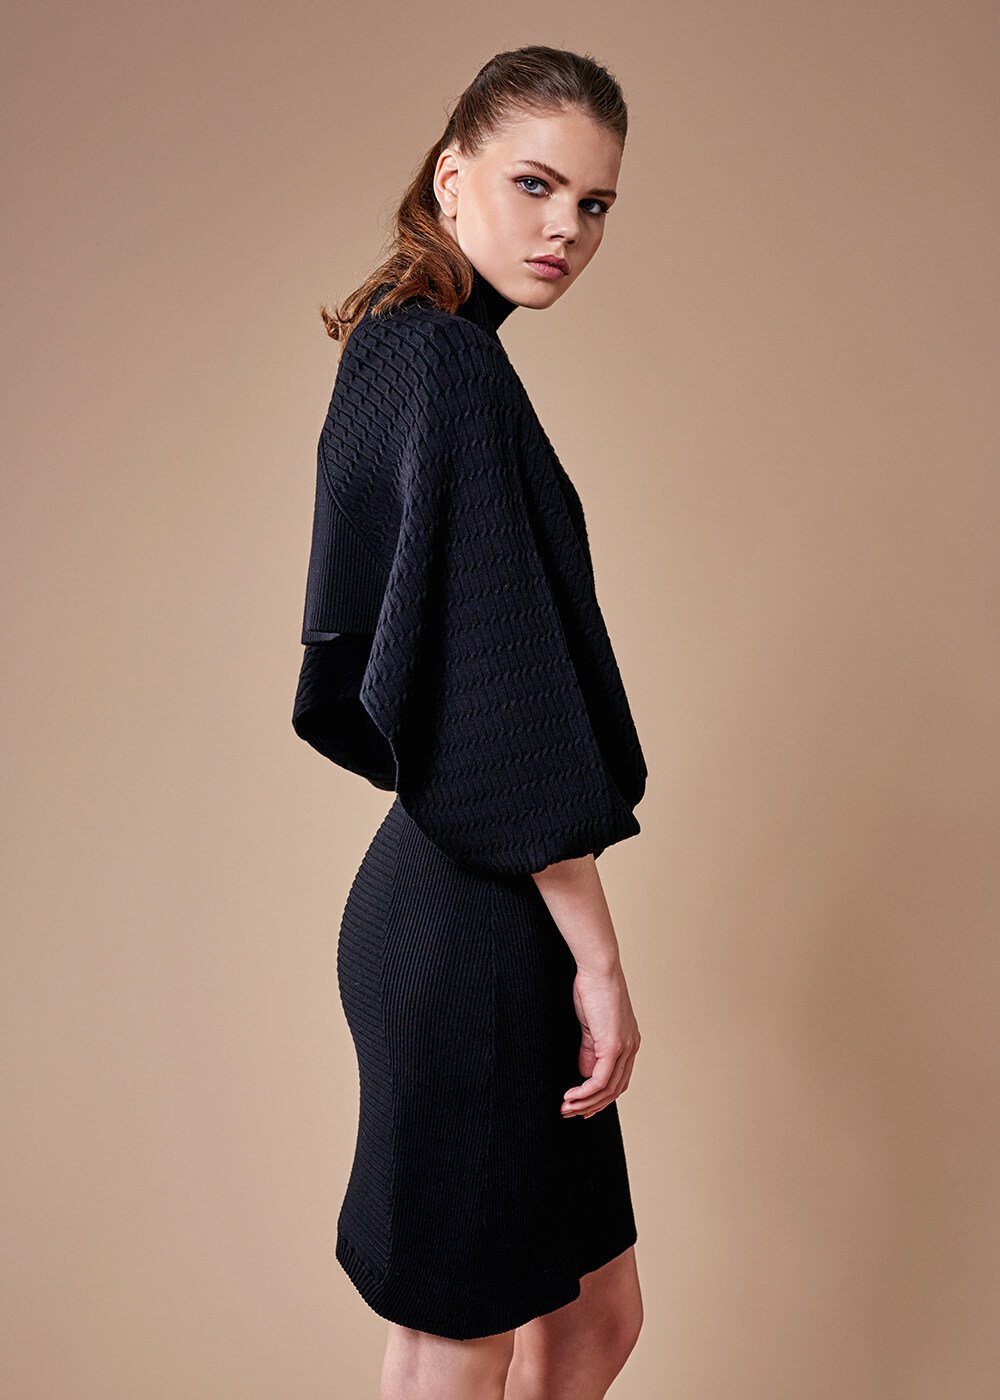 LOOSE FIT BLACK KNIT TOP